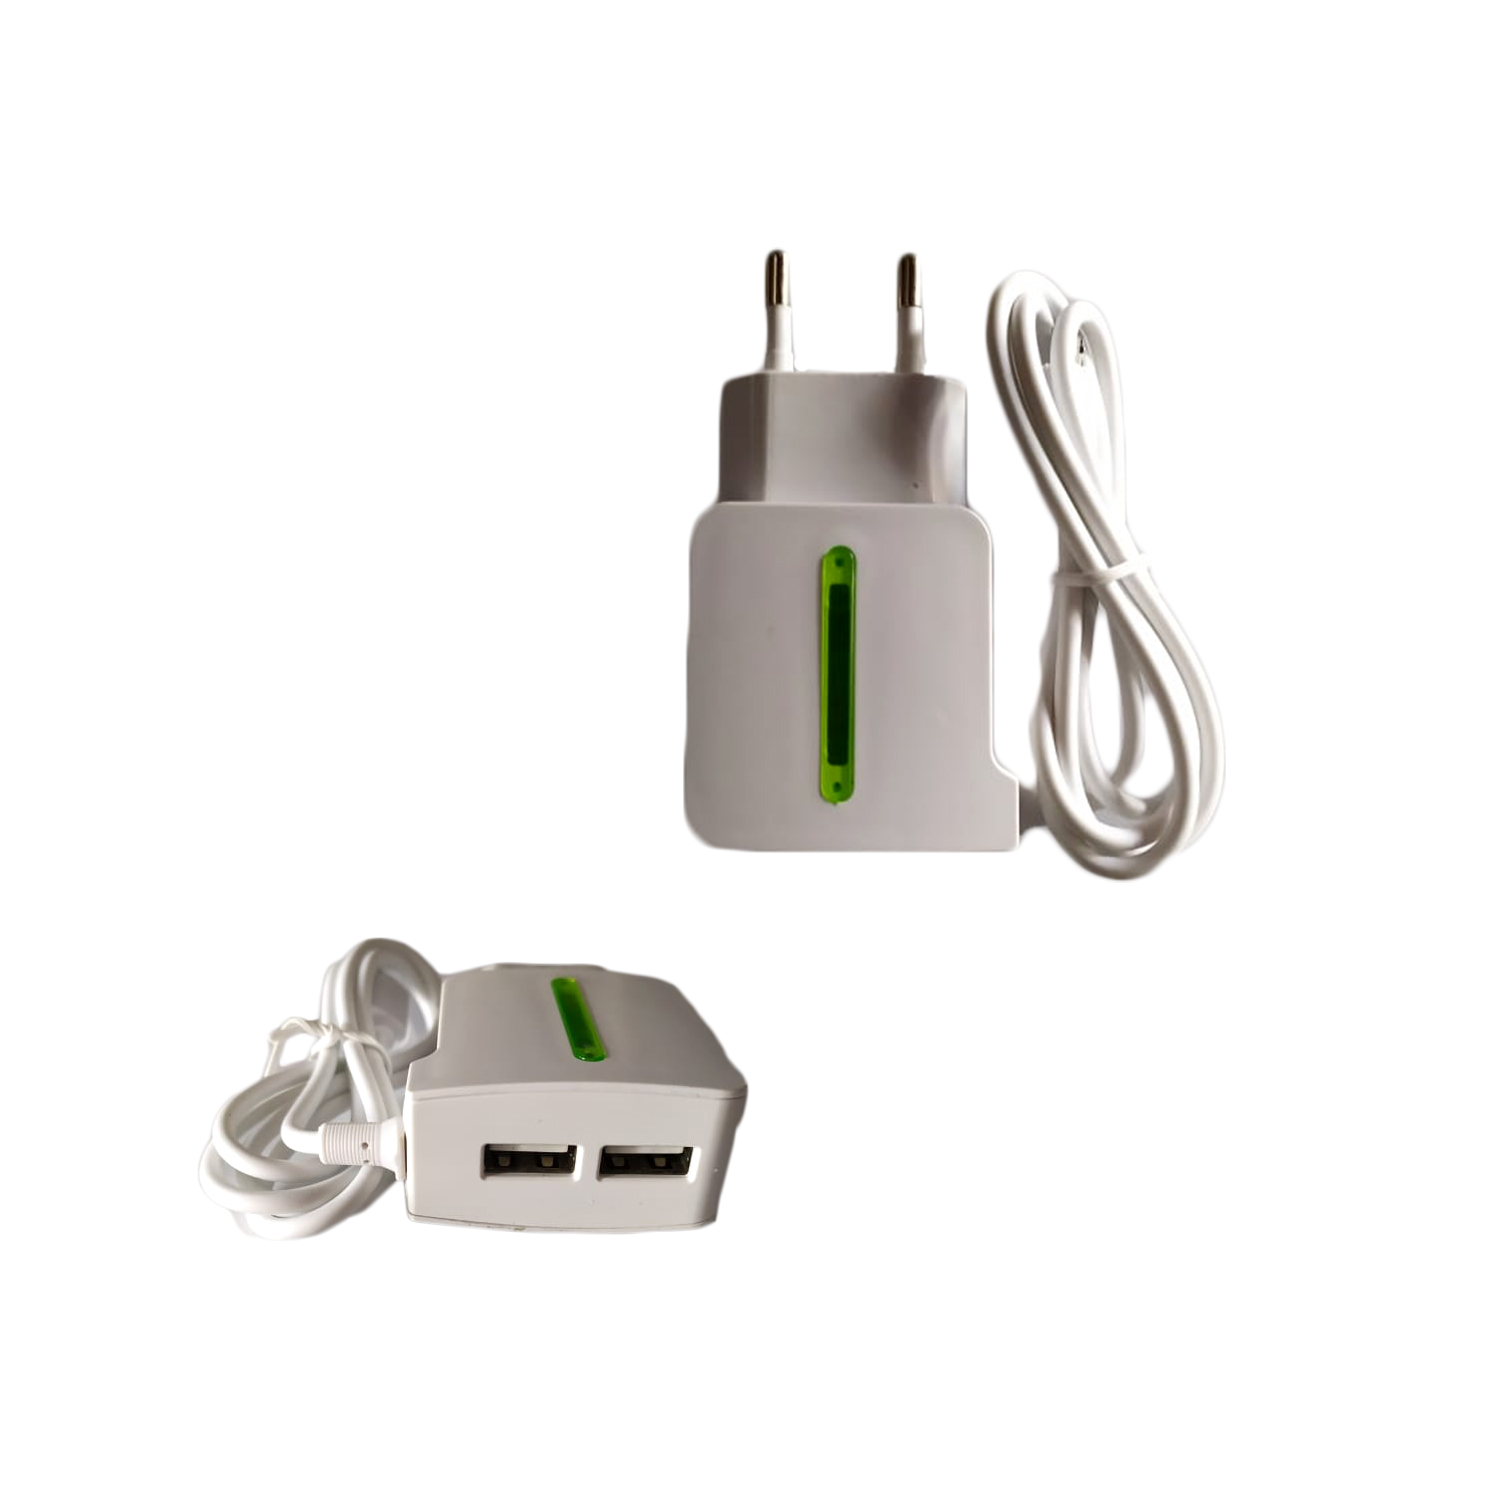 CHARGER BEST MICRO FOR MOBILE  -1.5A -شاحن مدخلين مع كبل مدمج ,Smartphones & Tab Chargers